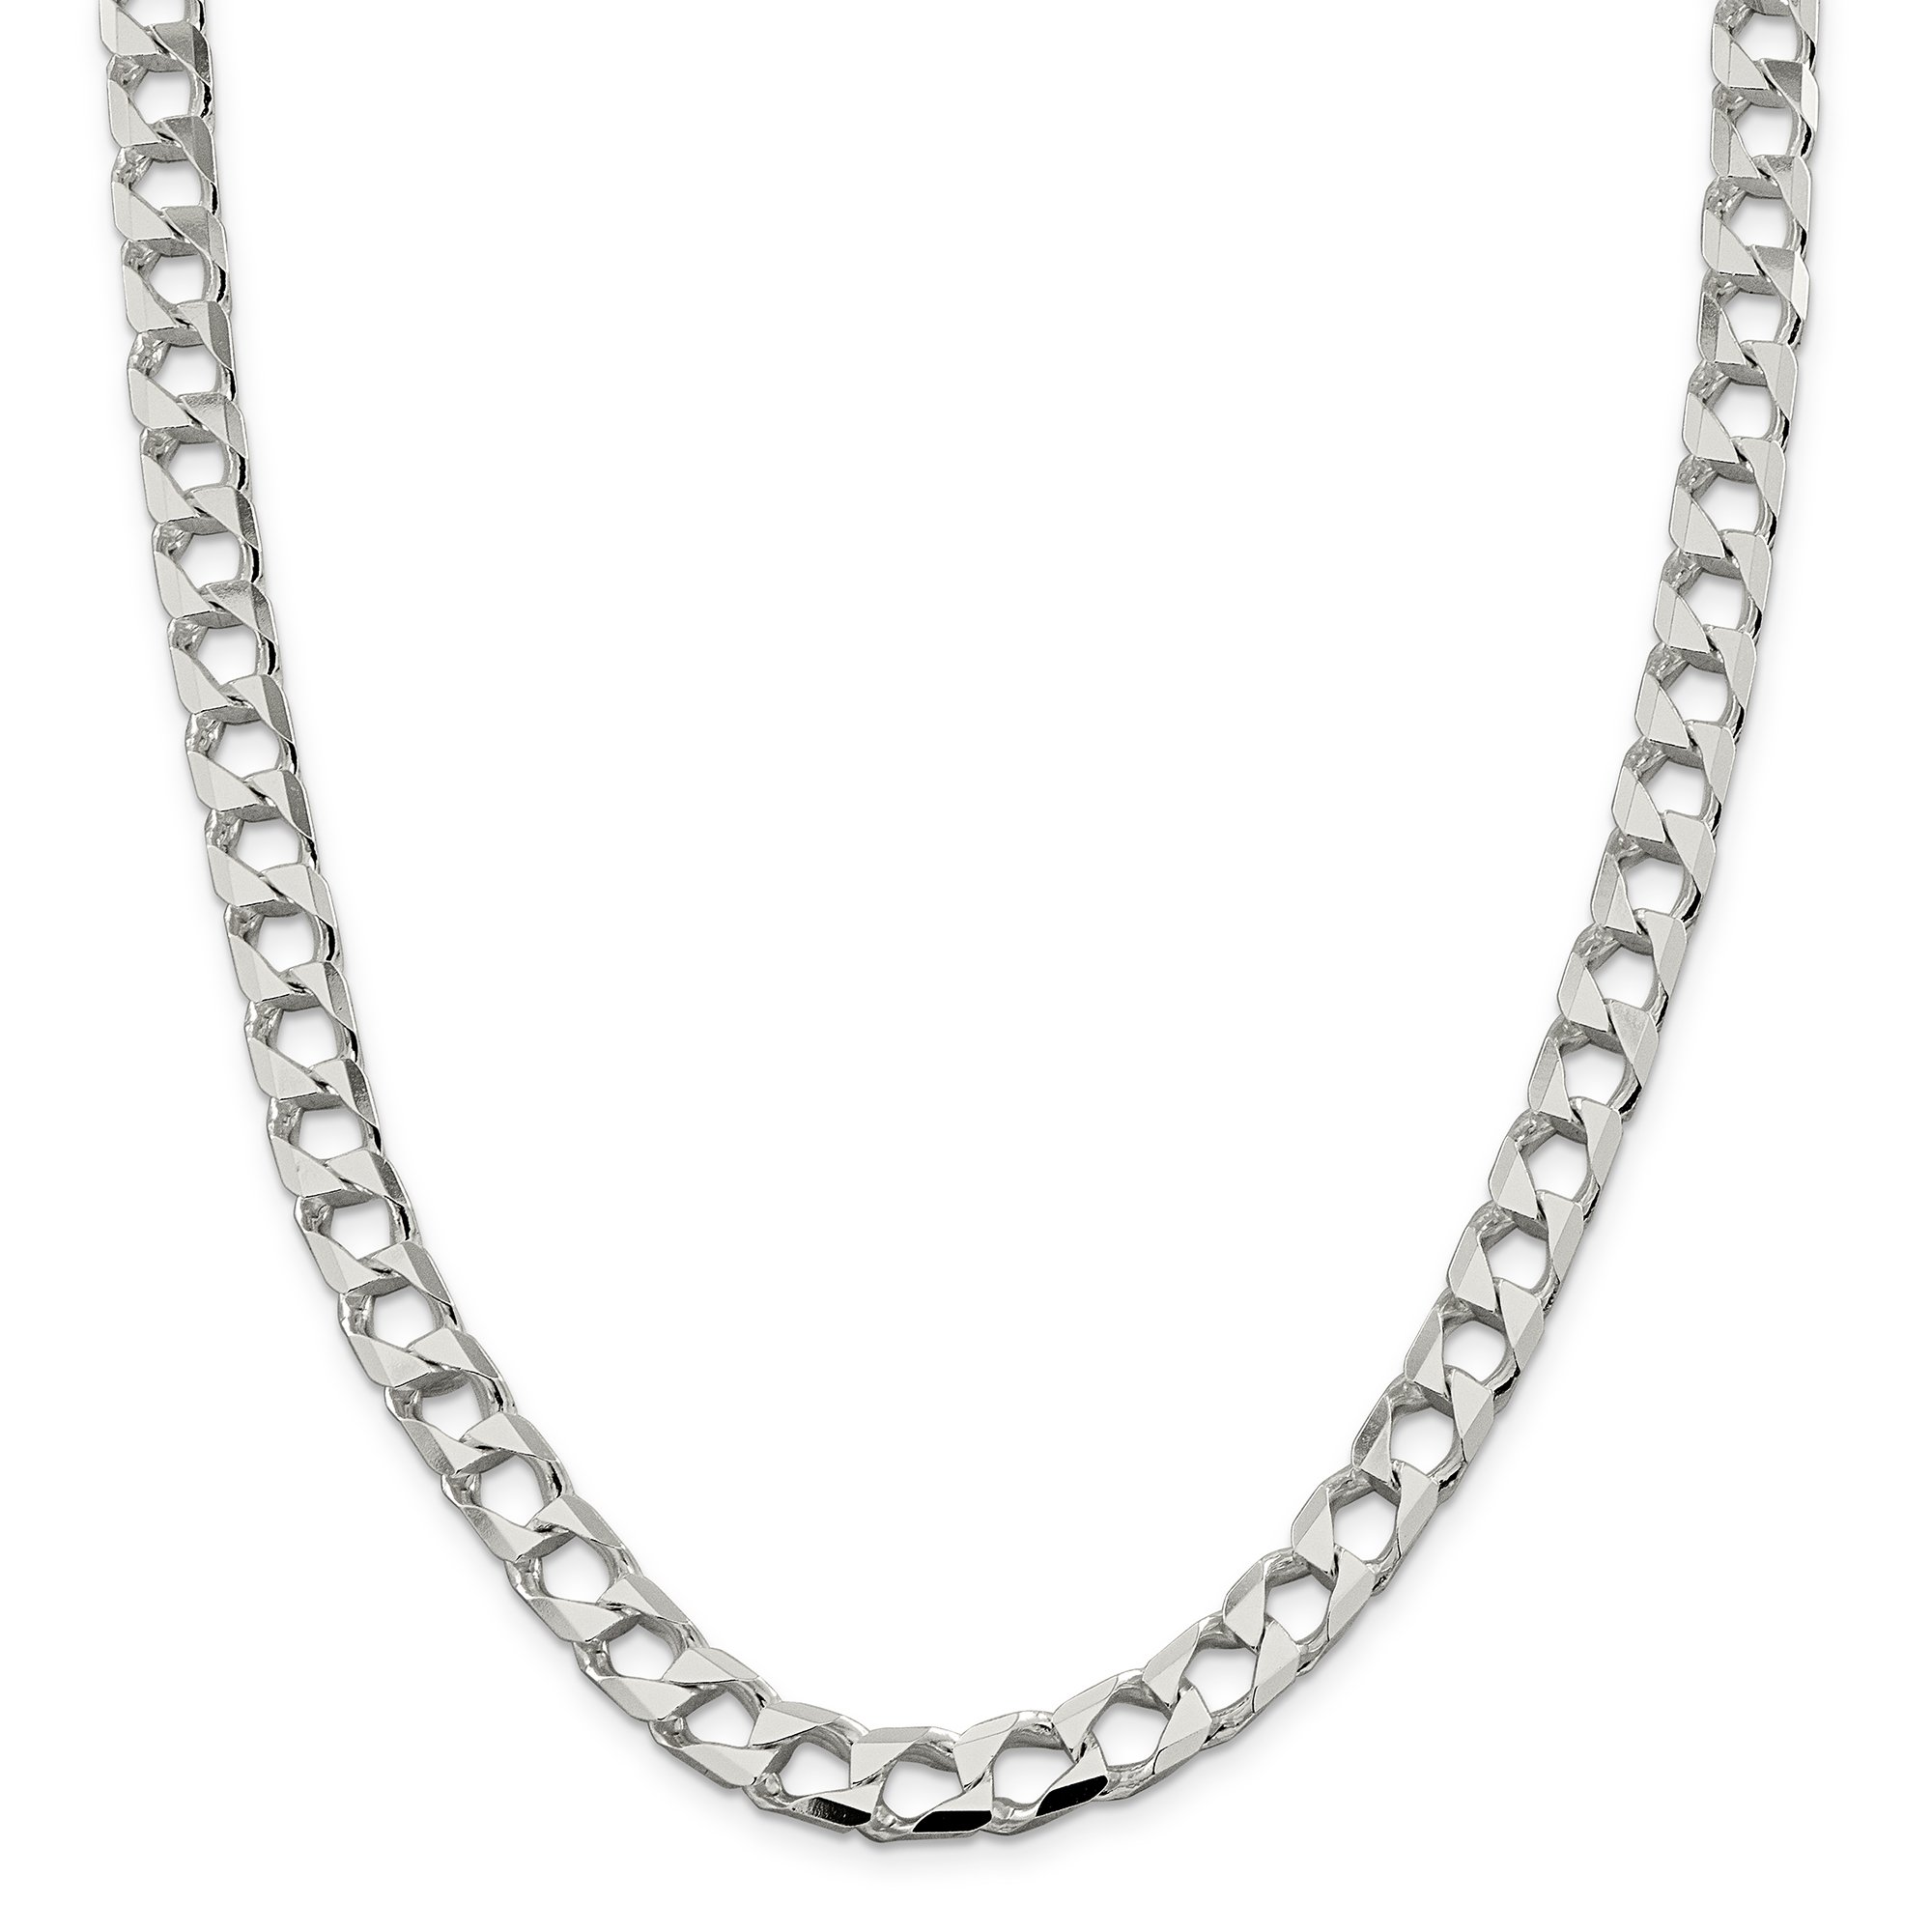 ICE CARATS 925 Sterling Silver 8.6mm Link Curb Chain Necklace 24 Inch Square Flat